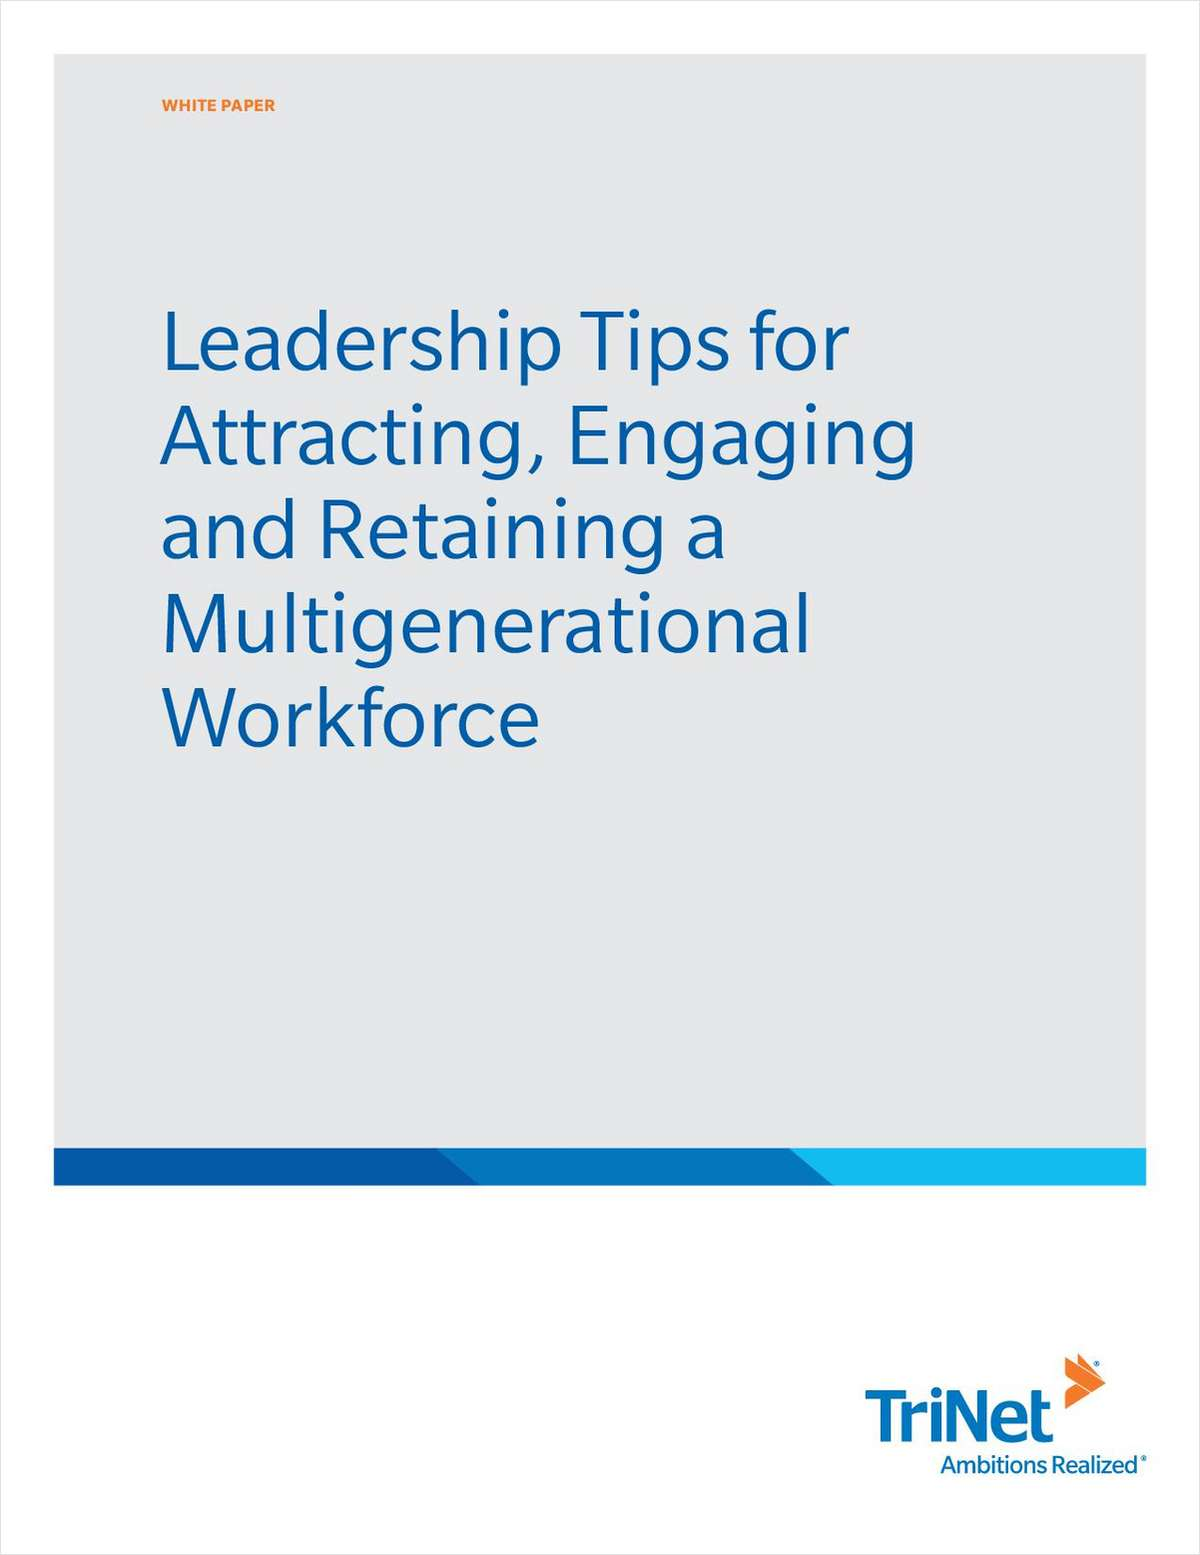 Leadership Tips for Attracting, Engaging and Retaining a Multigenerational Workforce